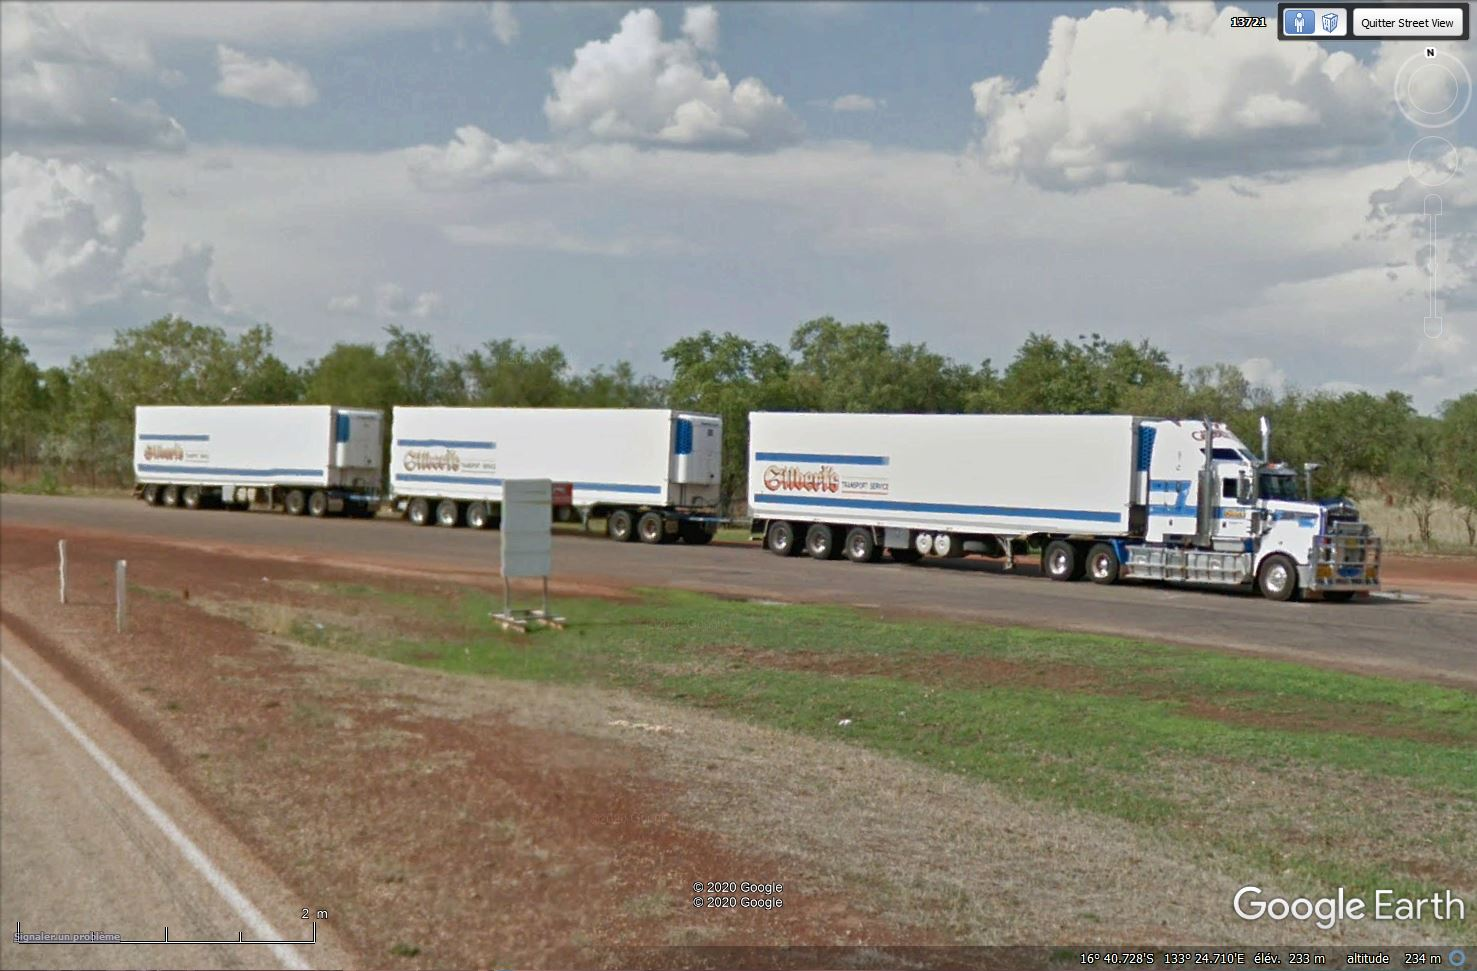 Camions australiens (road trains) - Page 6 Tsge1370